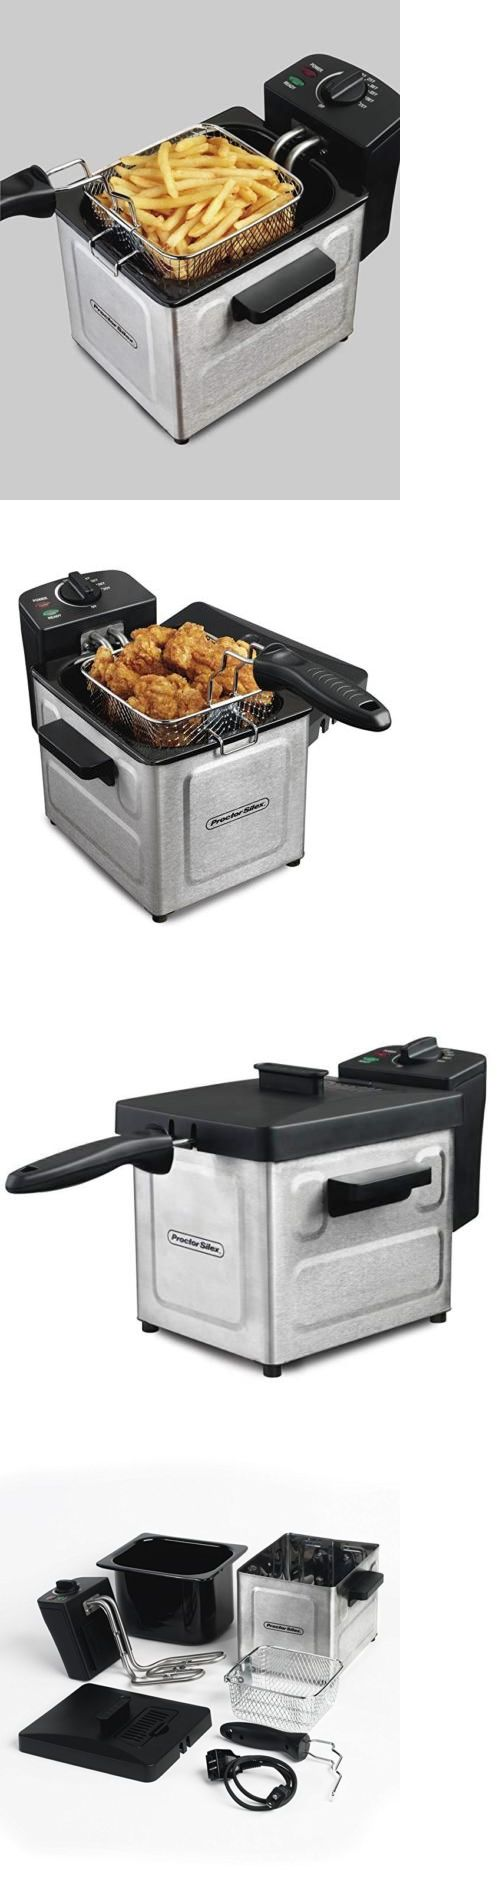 Fryers 185033 Electric Deep Fryer Countertop Machine Small Fish